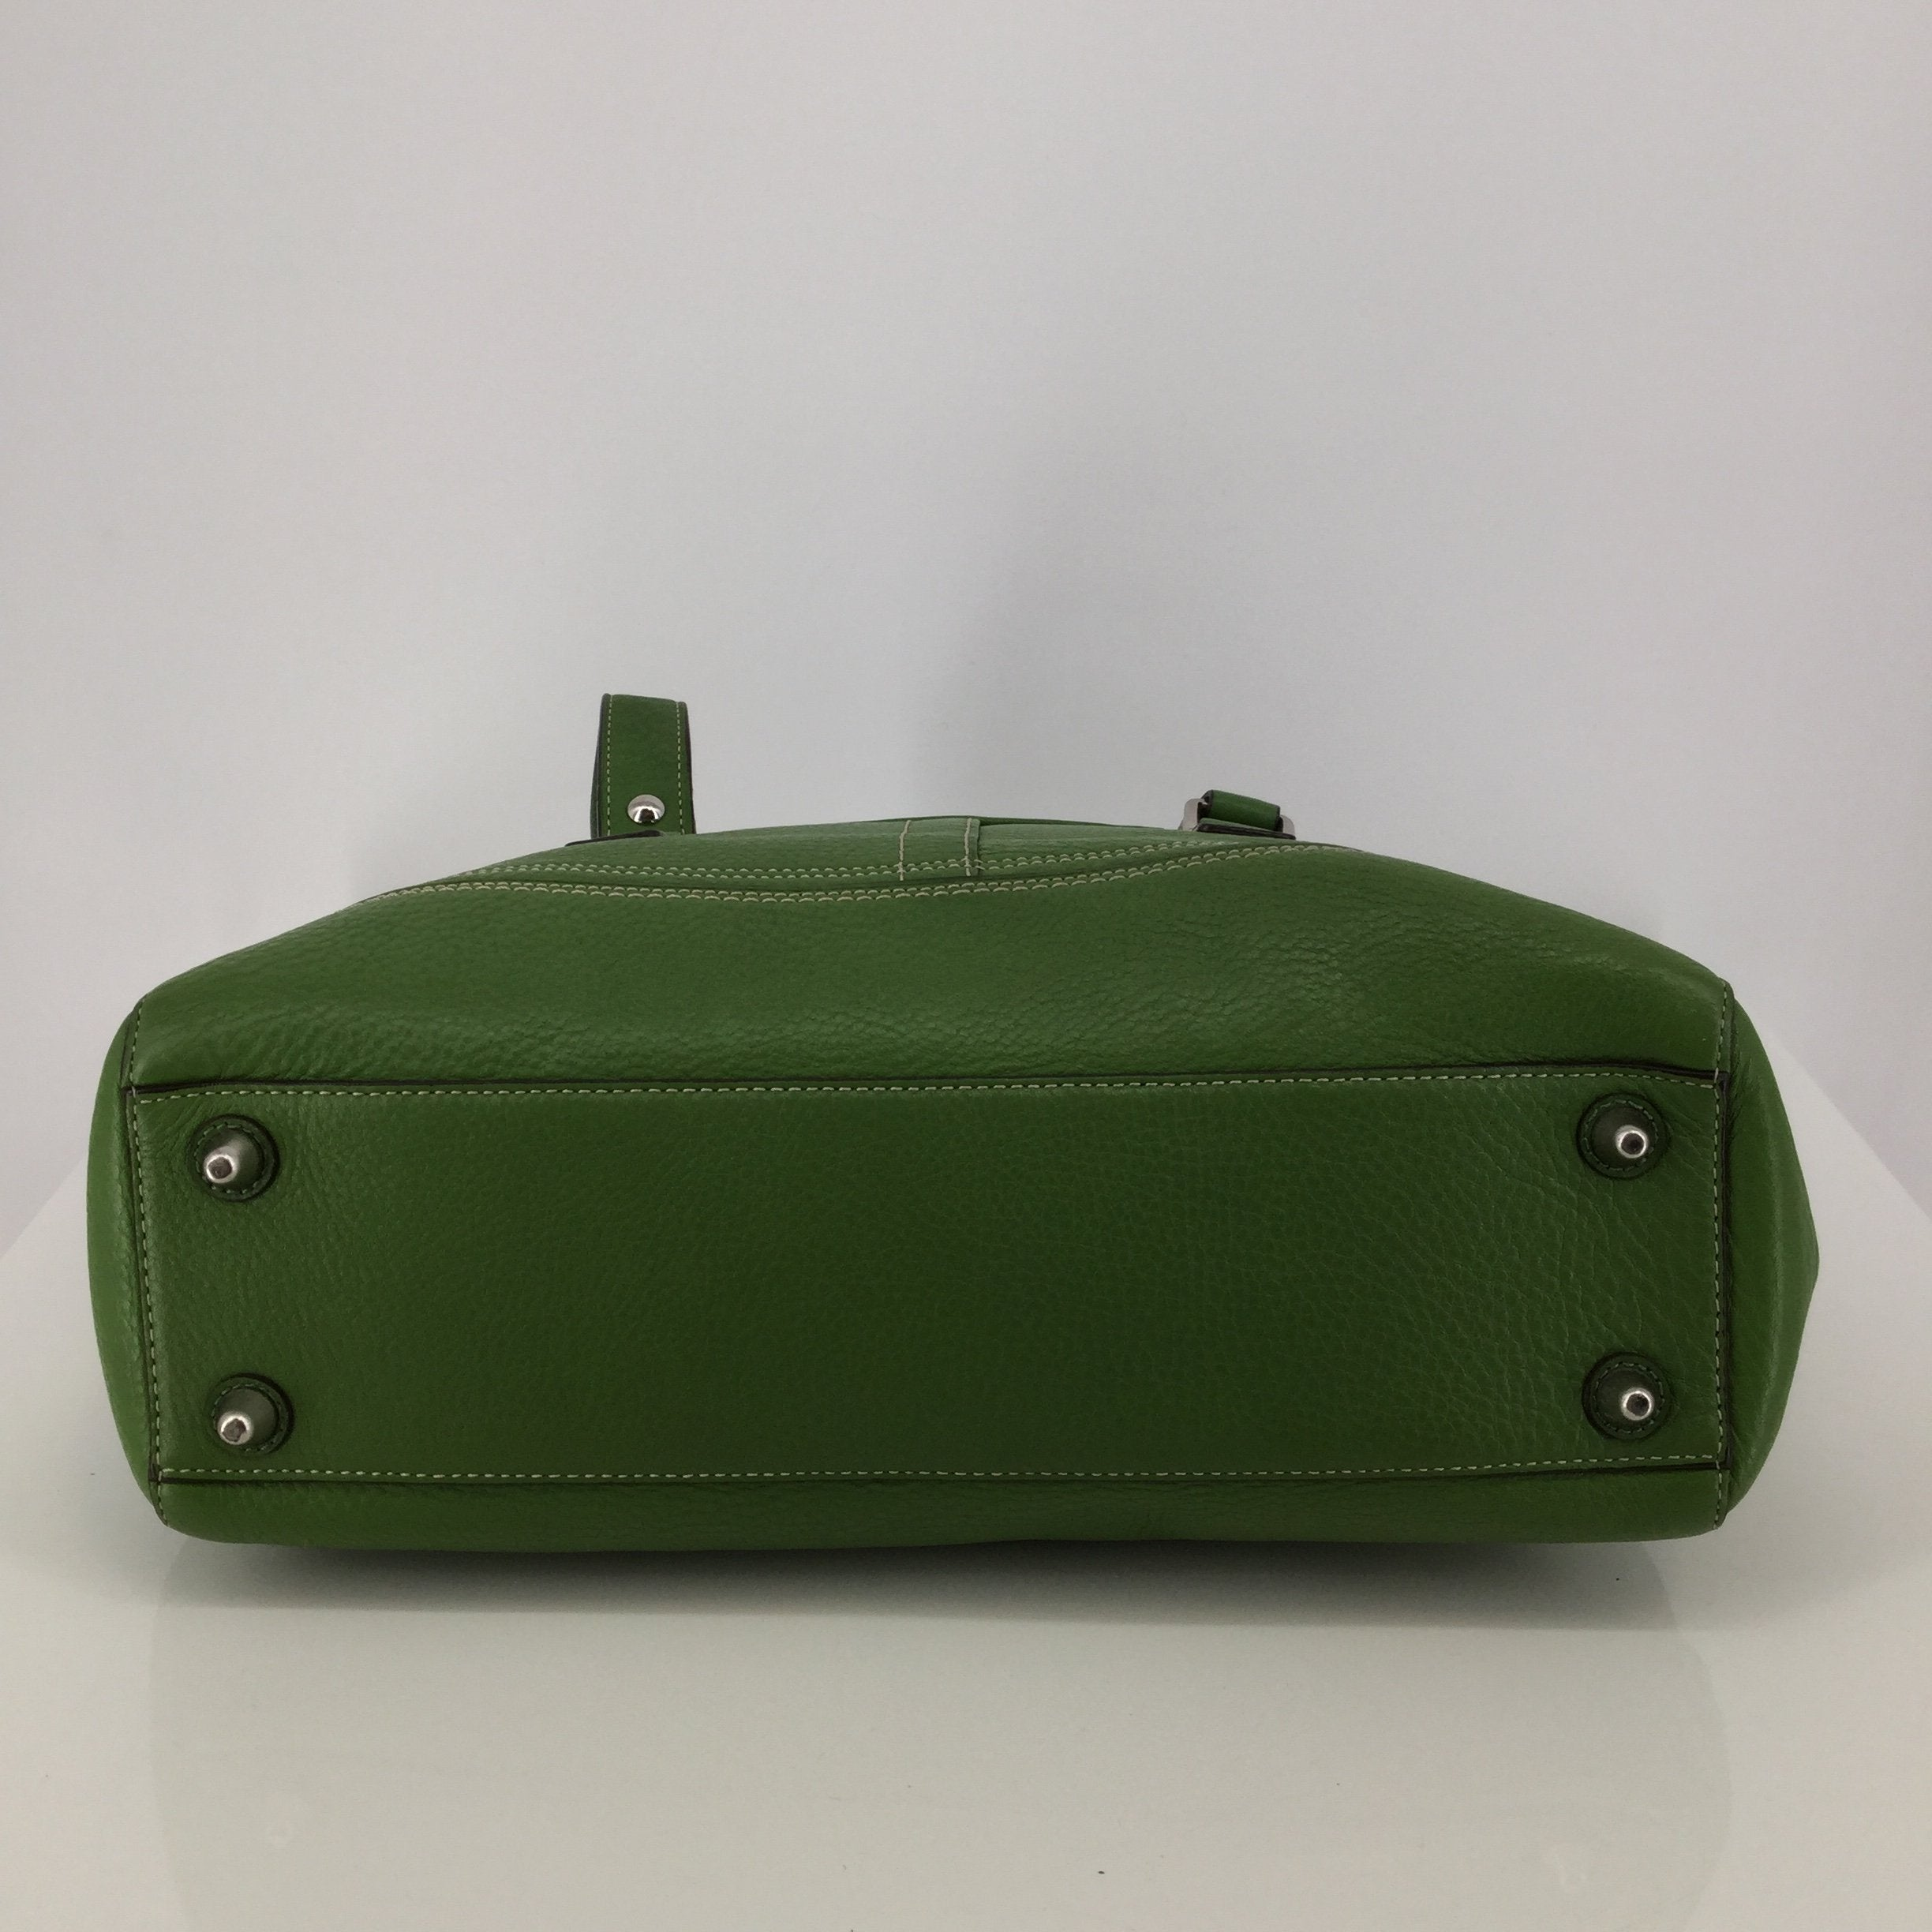 Green Coach Designer Handbag - <P>THIS BEAUTIFUL GREEN COACH INCLUDES A ZIPPER POCKET AND TWO SLIP POCKETS INSIDE. IT IS GREEN WITH A BLUE INTERIOR. IT IS IN VERY GOOD CONDITION BOTH INSIDE AND OUT.</P>